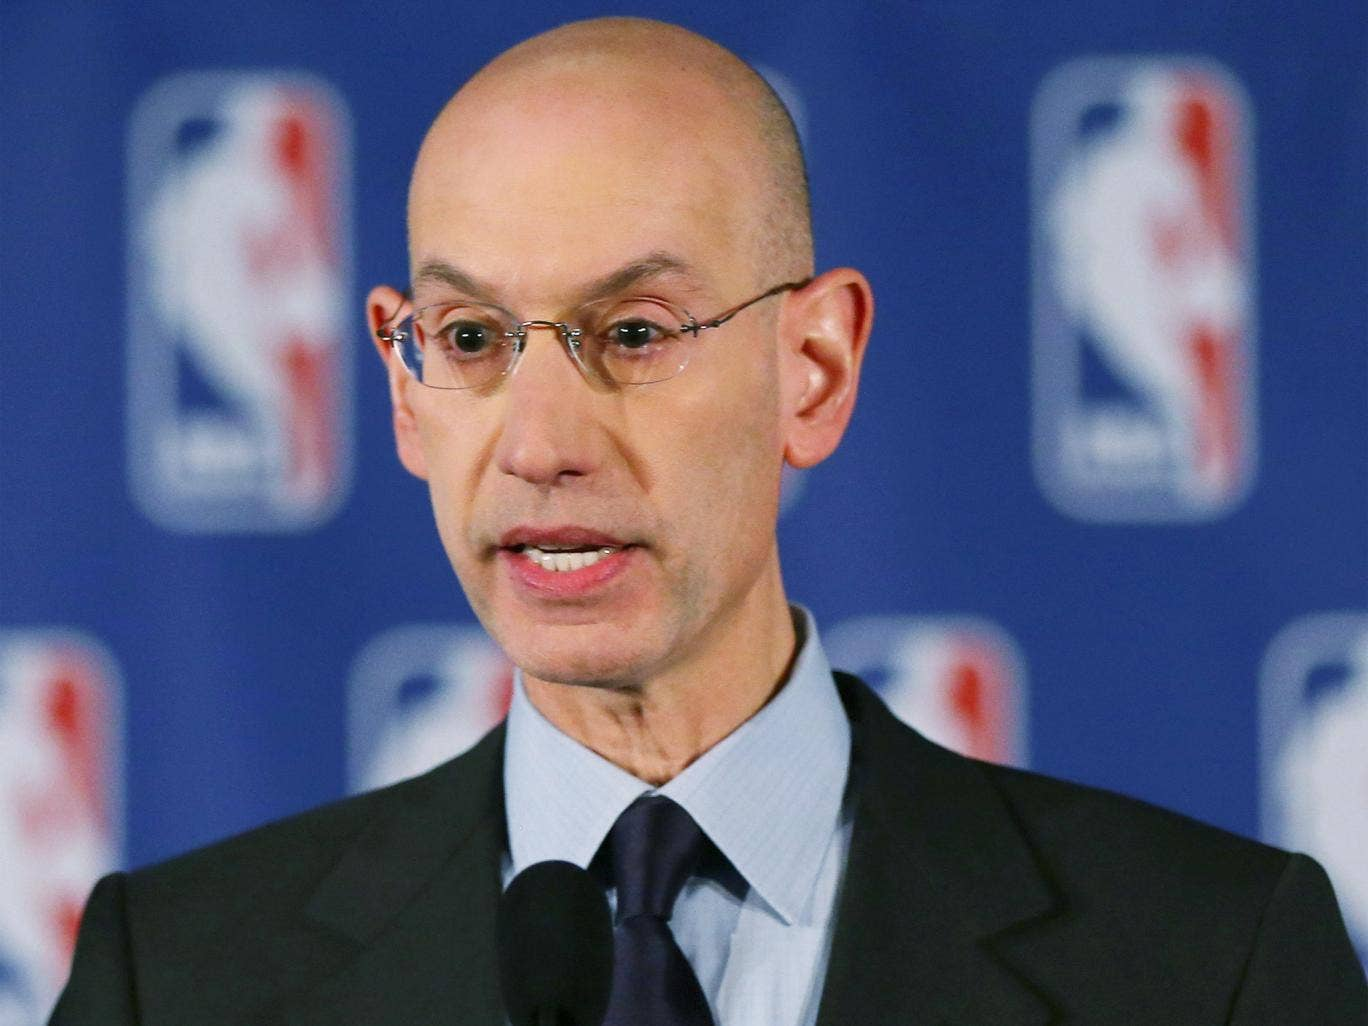 Adam Silver has only been in his job since February but already he has taken decisive action on racism